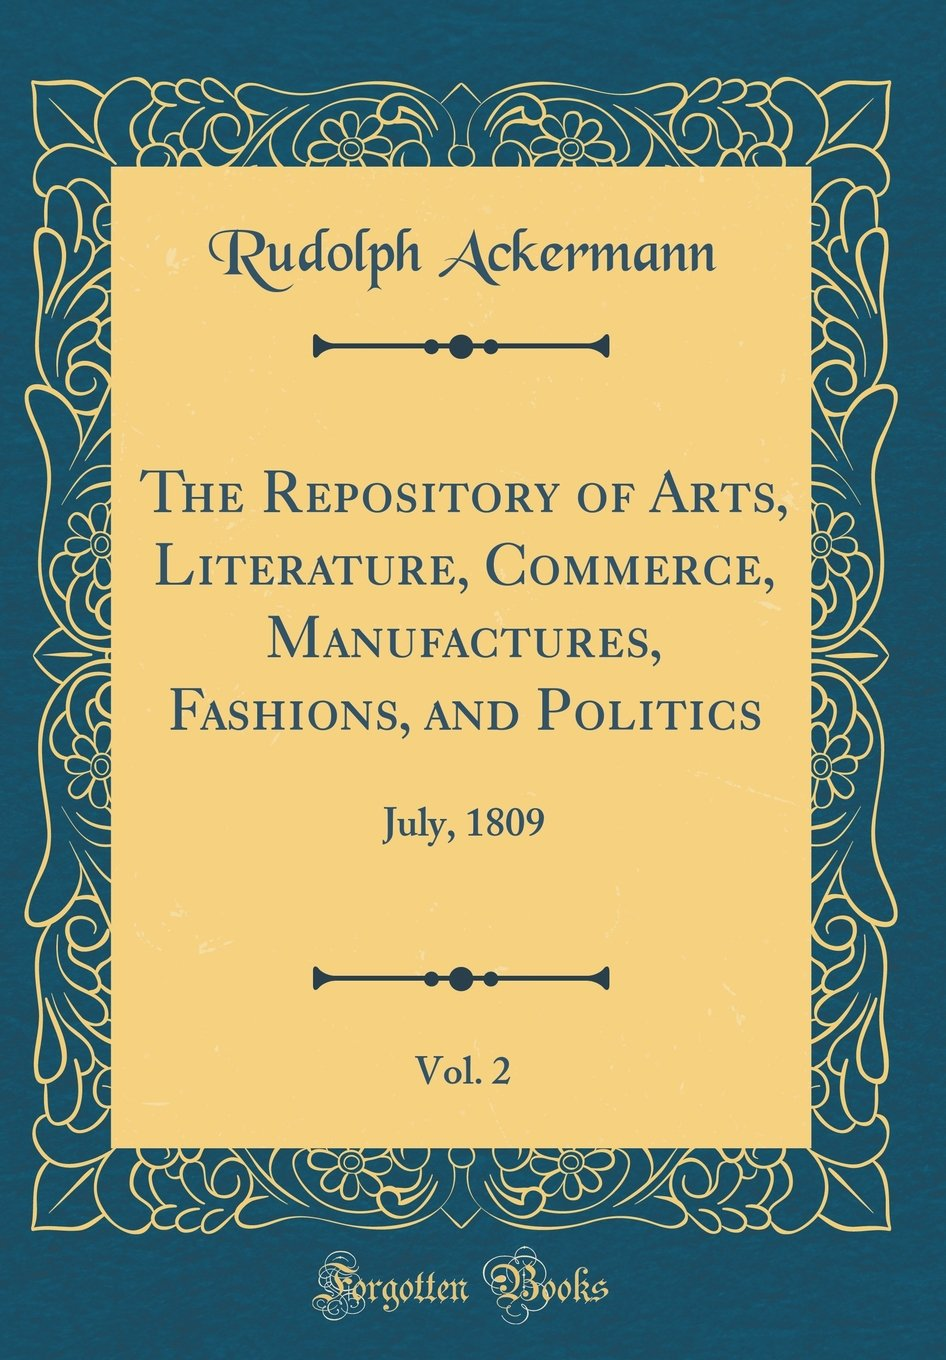 The Repository of Arts, Literature, Commerce, Manufactures, Fashions, and Politics, Vol. 2: July, 1809 (Classic Reprint) ebook